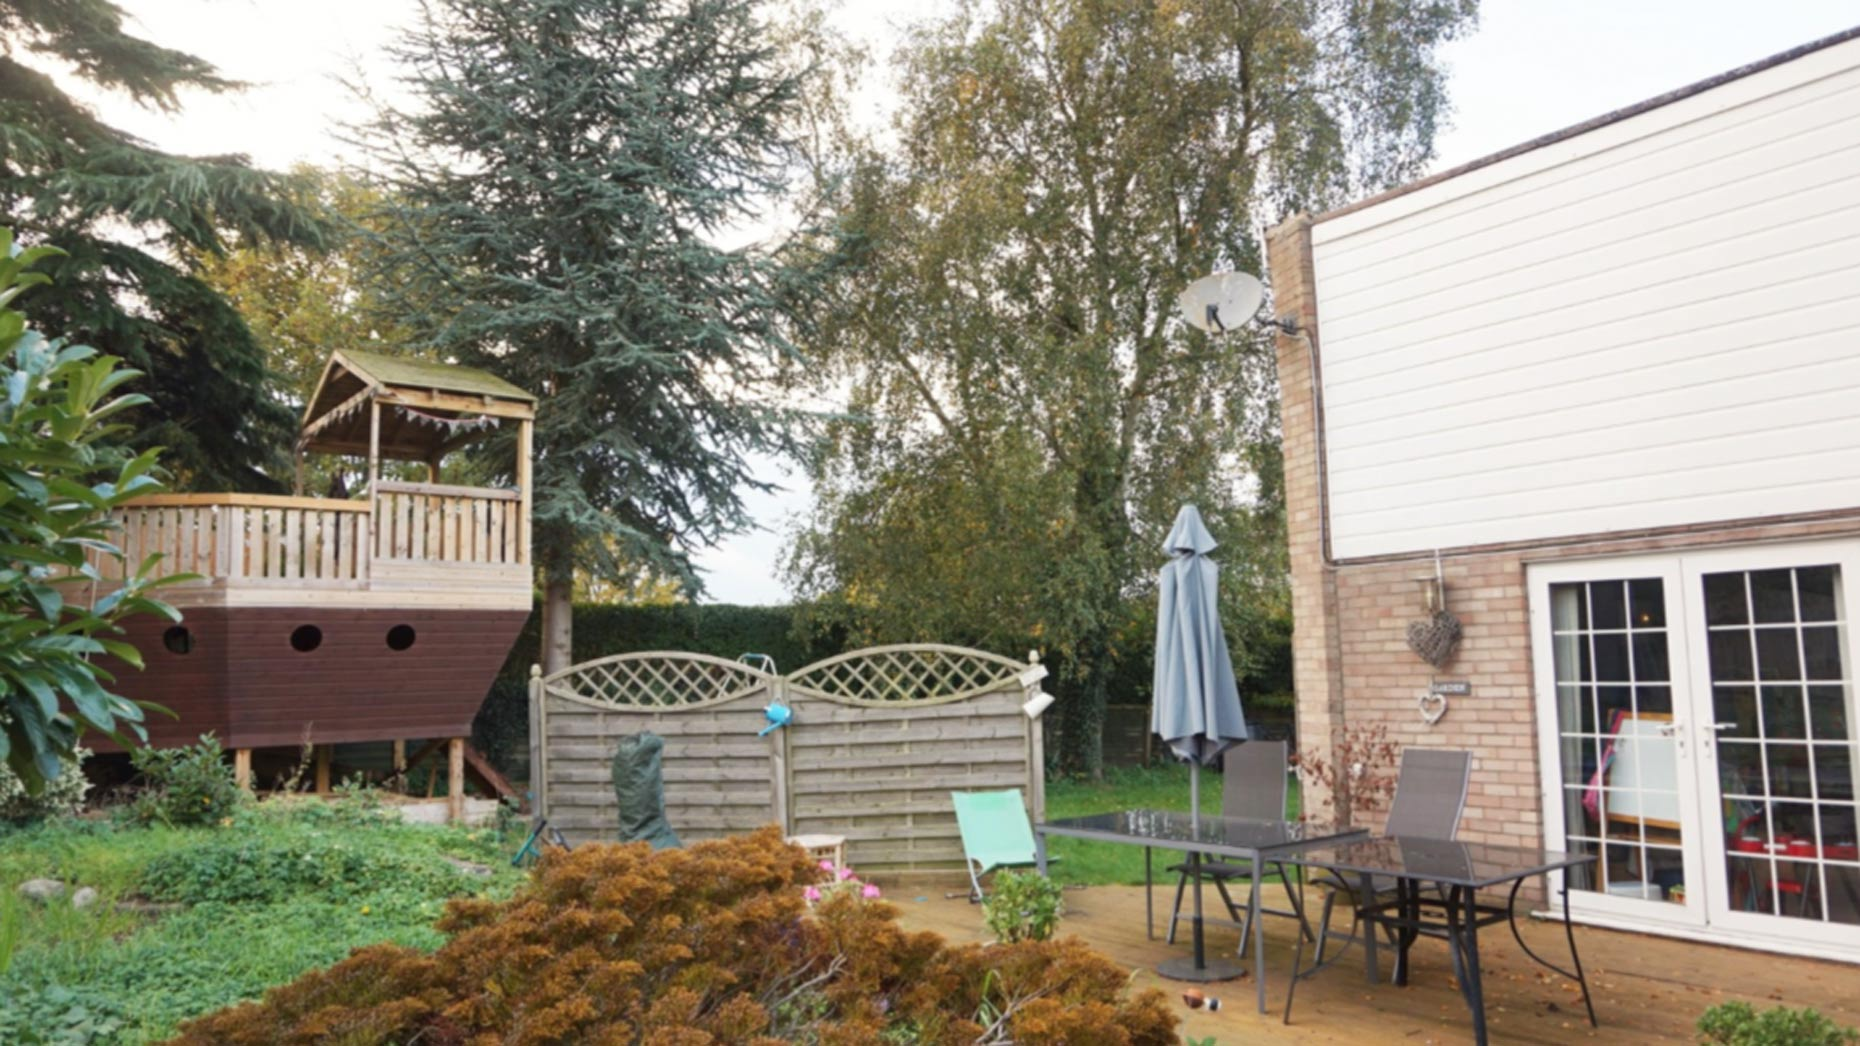 Who wouldn't love a house with a boat in the back garden?!